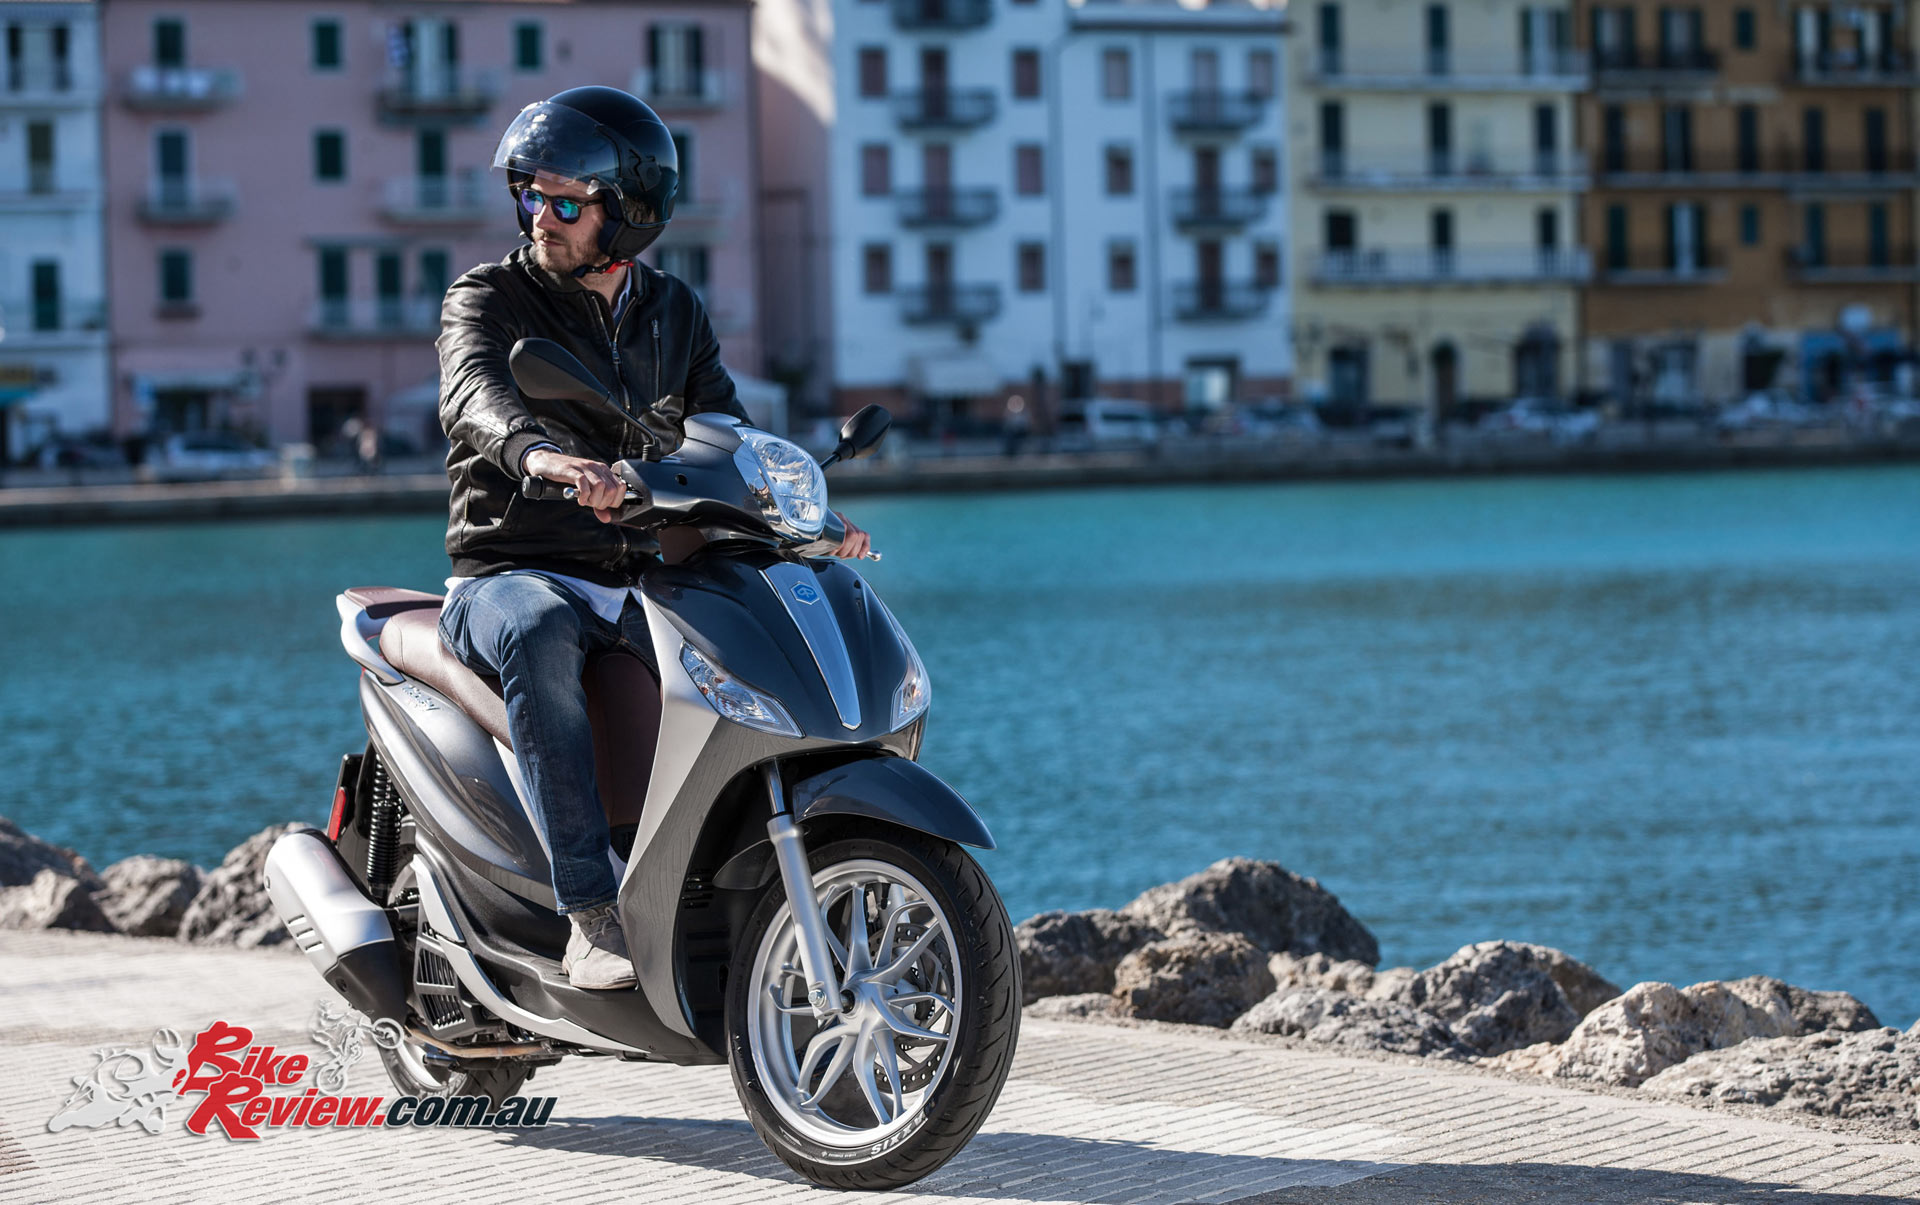 new piaggio medley 150 i-get - bike review